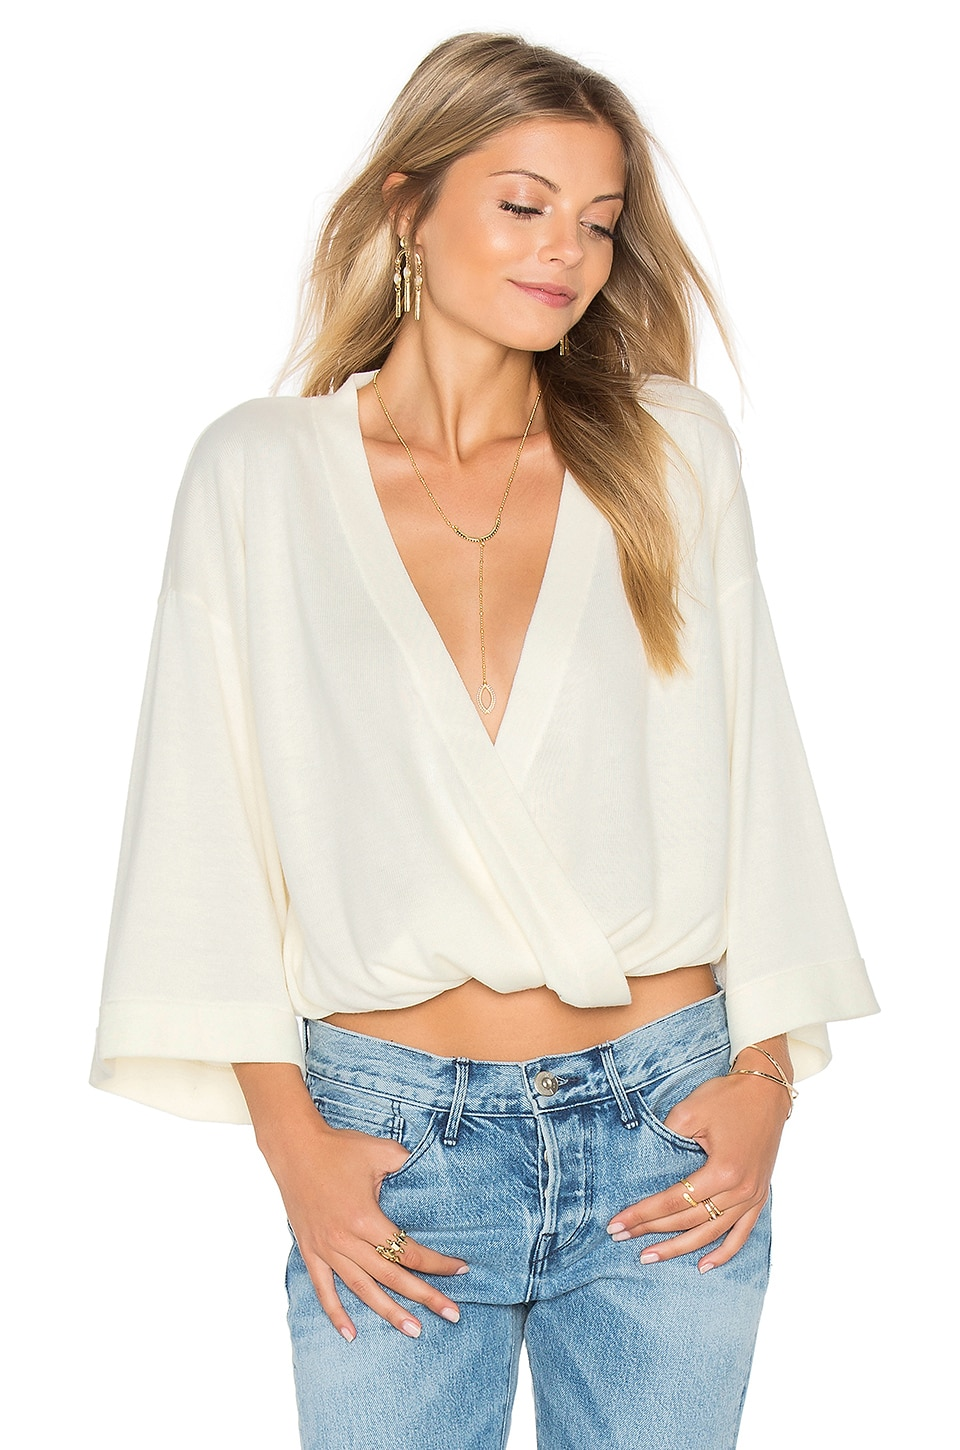 MINKPINK Her Story Top in Off White